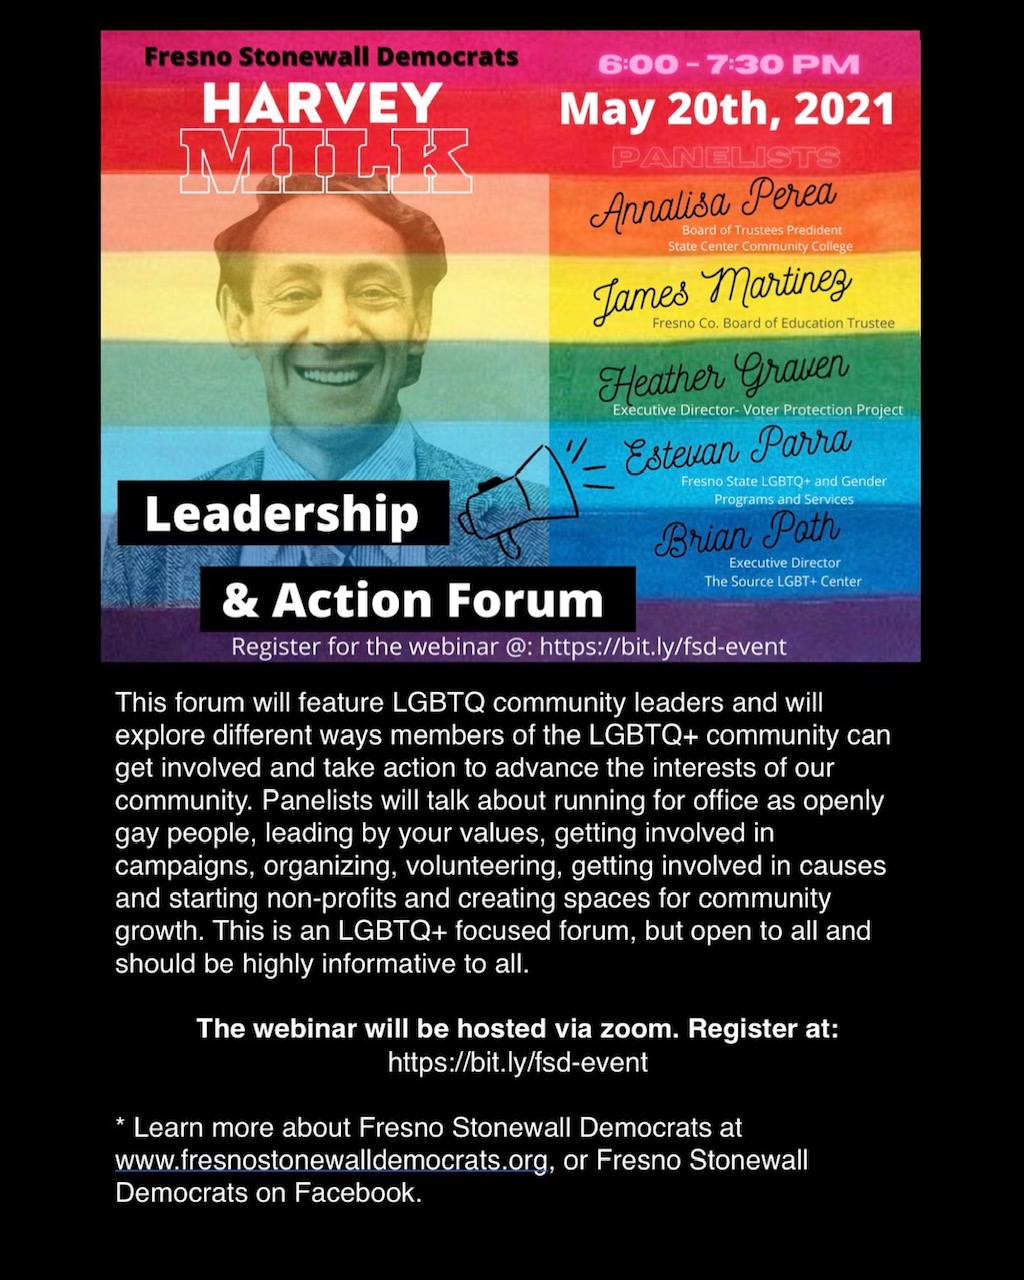 Harvey Milk Leadership & Action Forum